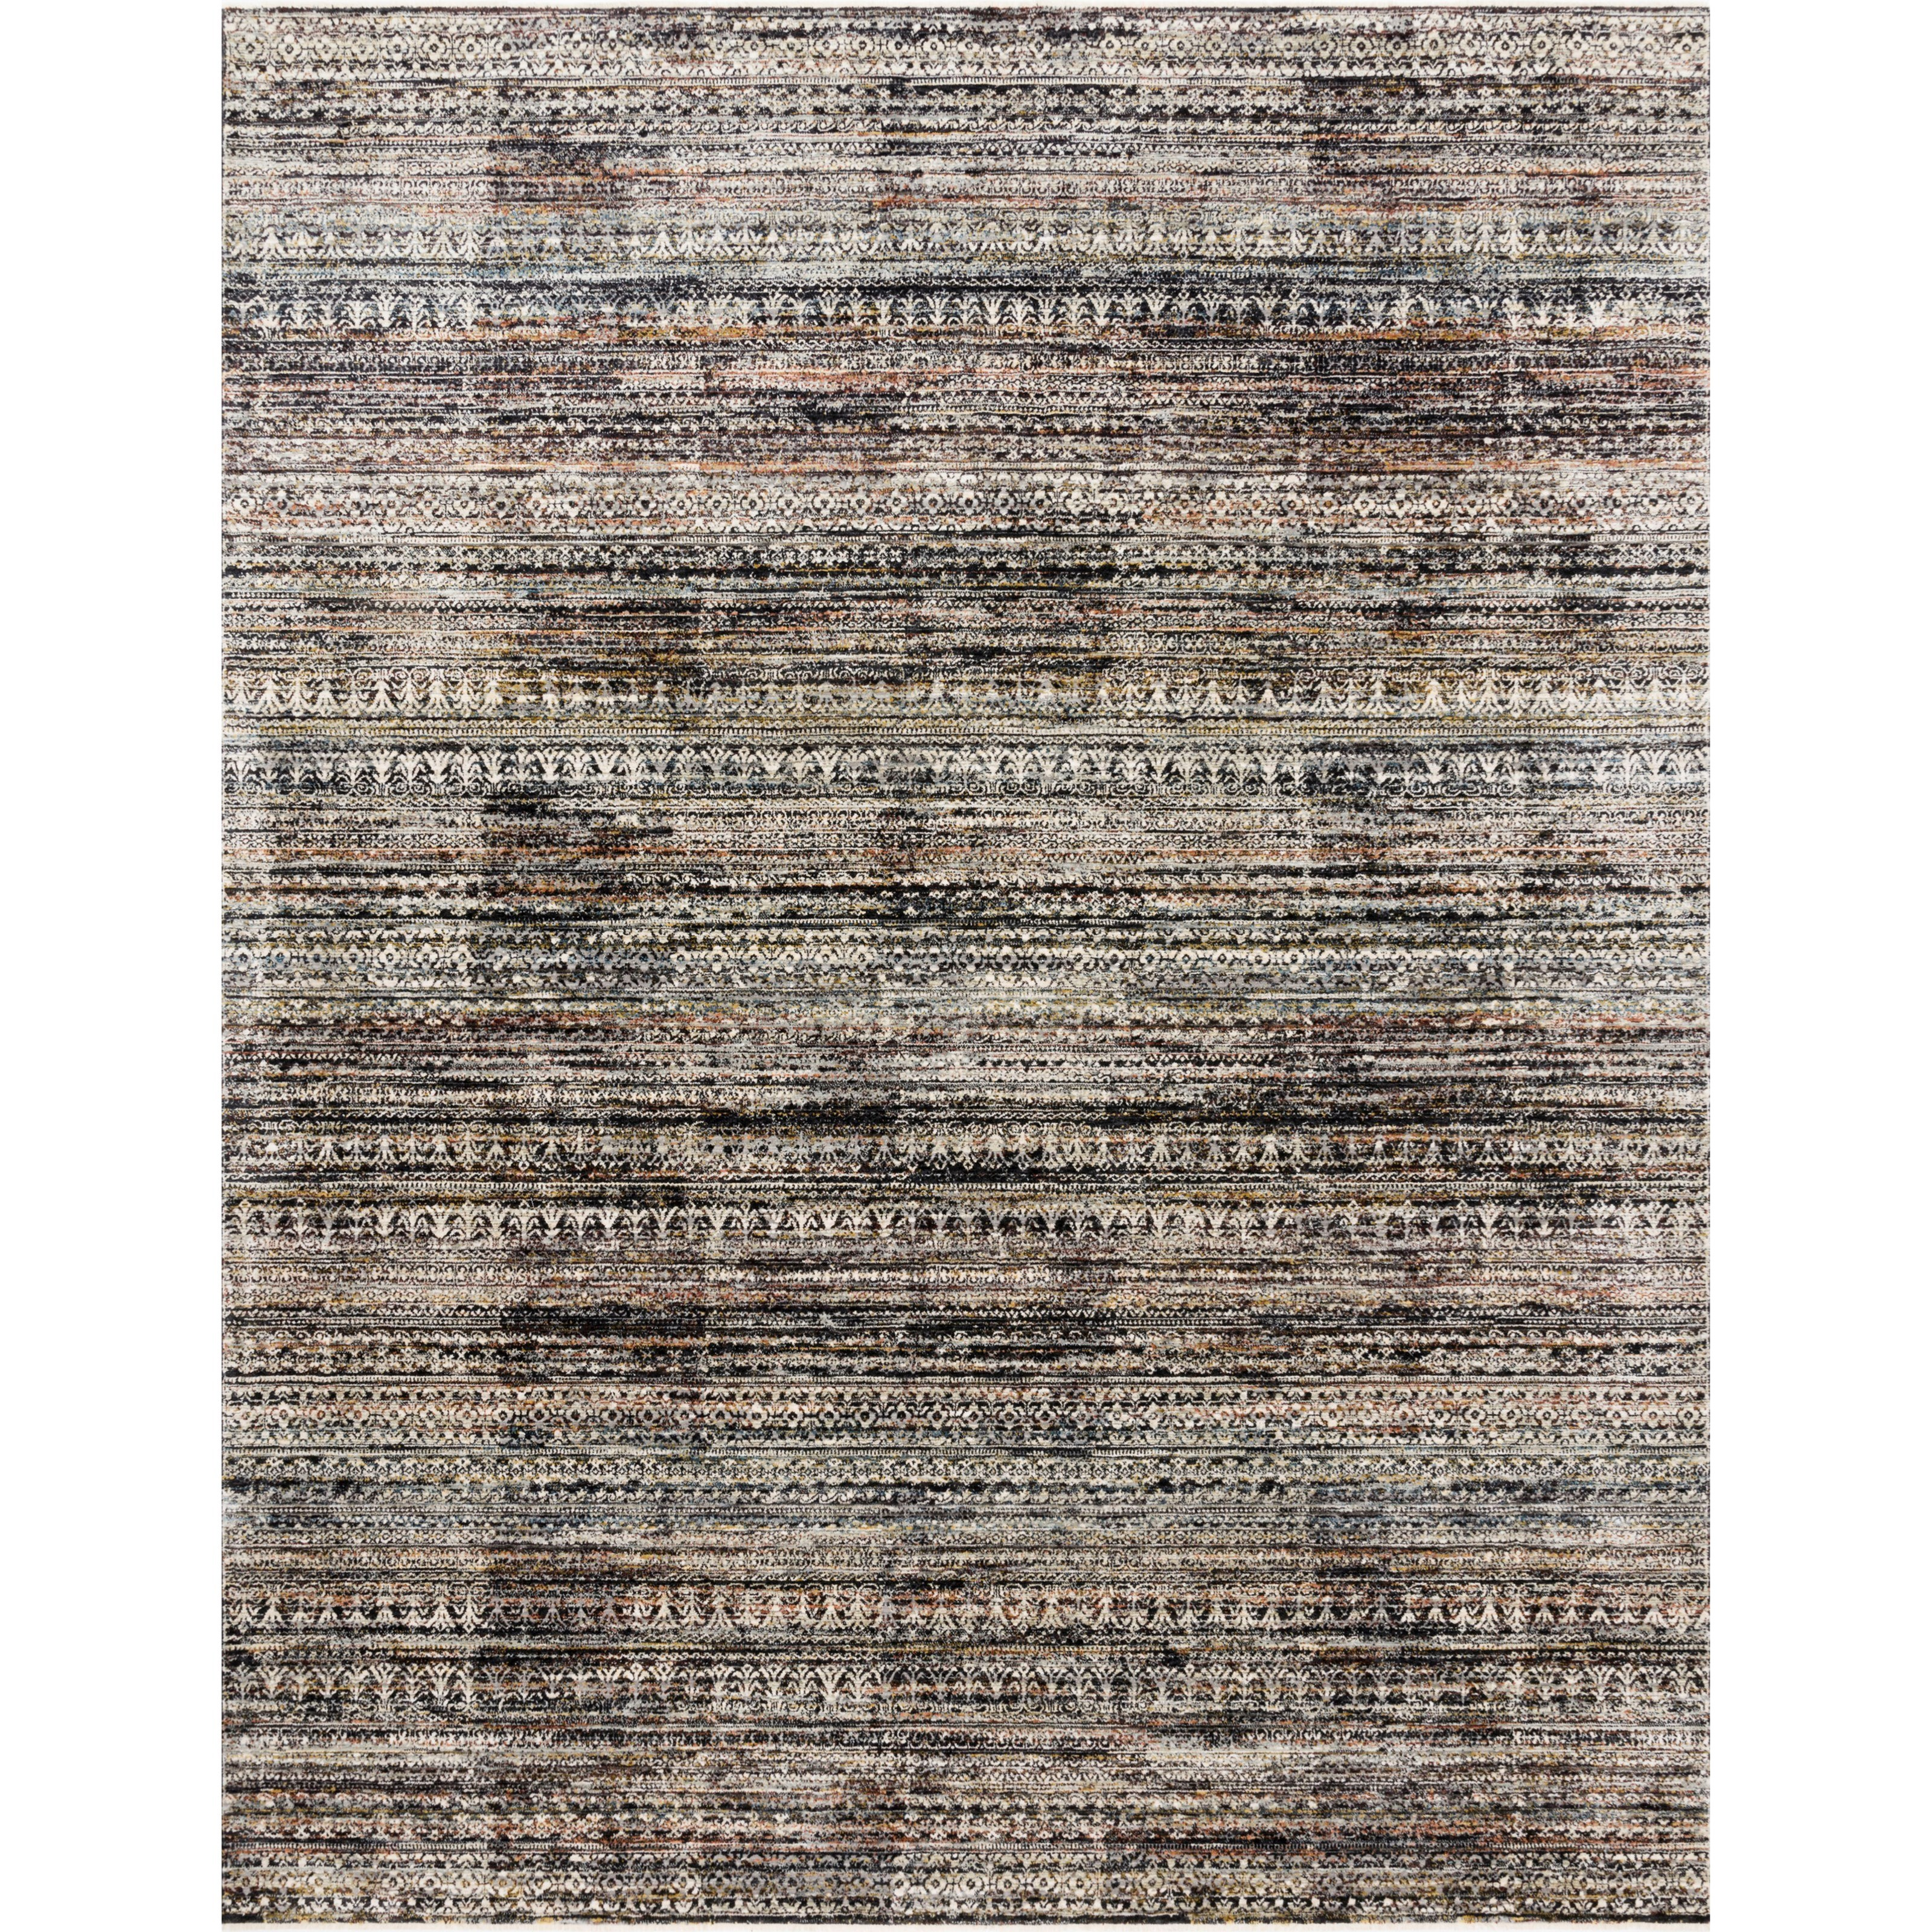 "Theia 5'0"" x 8'0"" Grey / Multi Rug by Loloi Rugs at Pedigo Furniture"